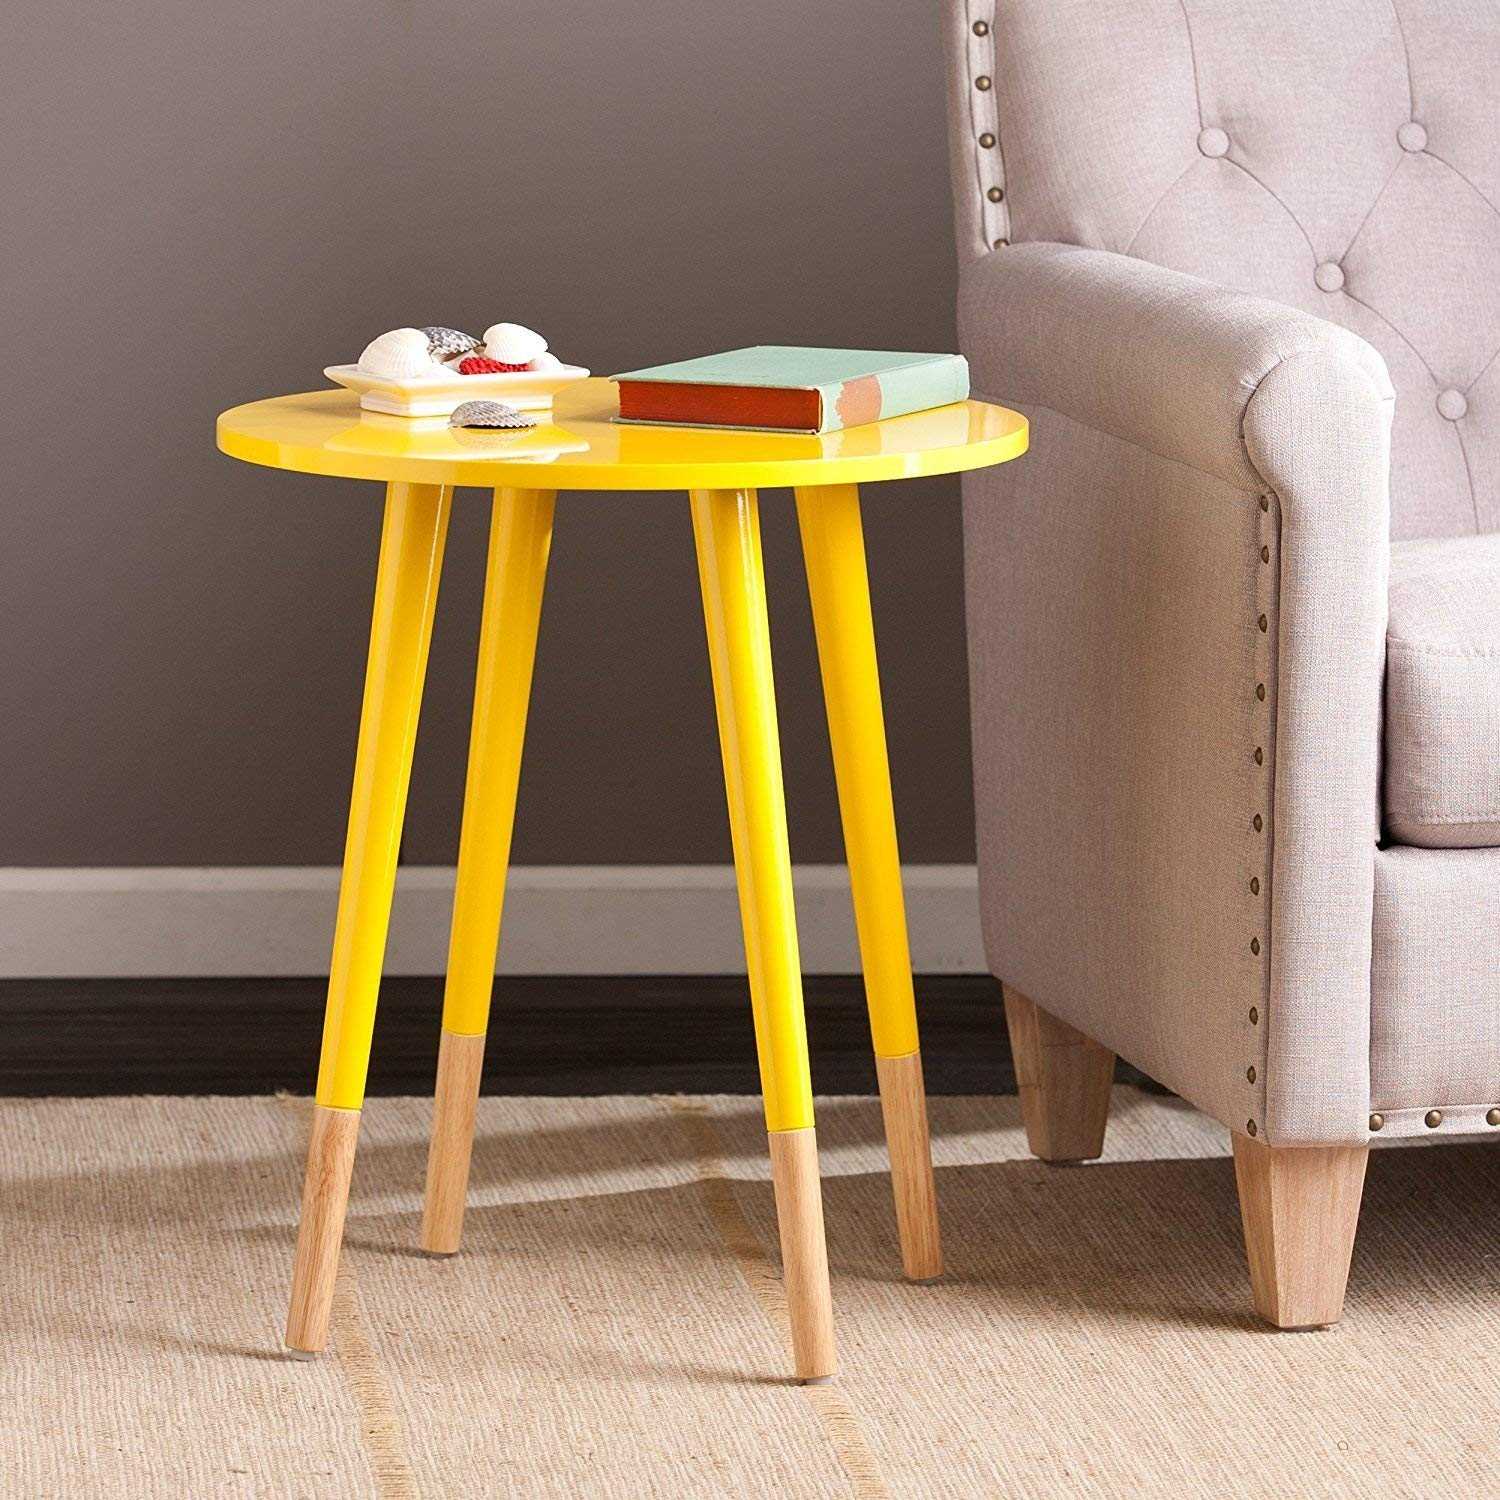 Indoor Multi-Function Accent Table Study Computer Home Office Desk Bedroom Living Room Modern Style End Table Sofa Side Table Coffee Table Yellow round table